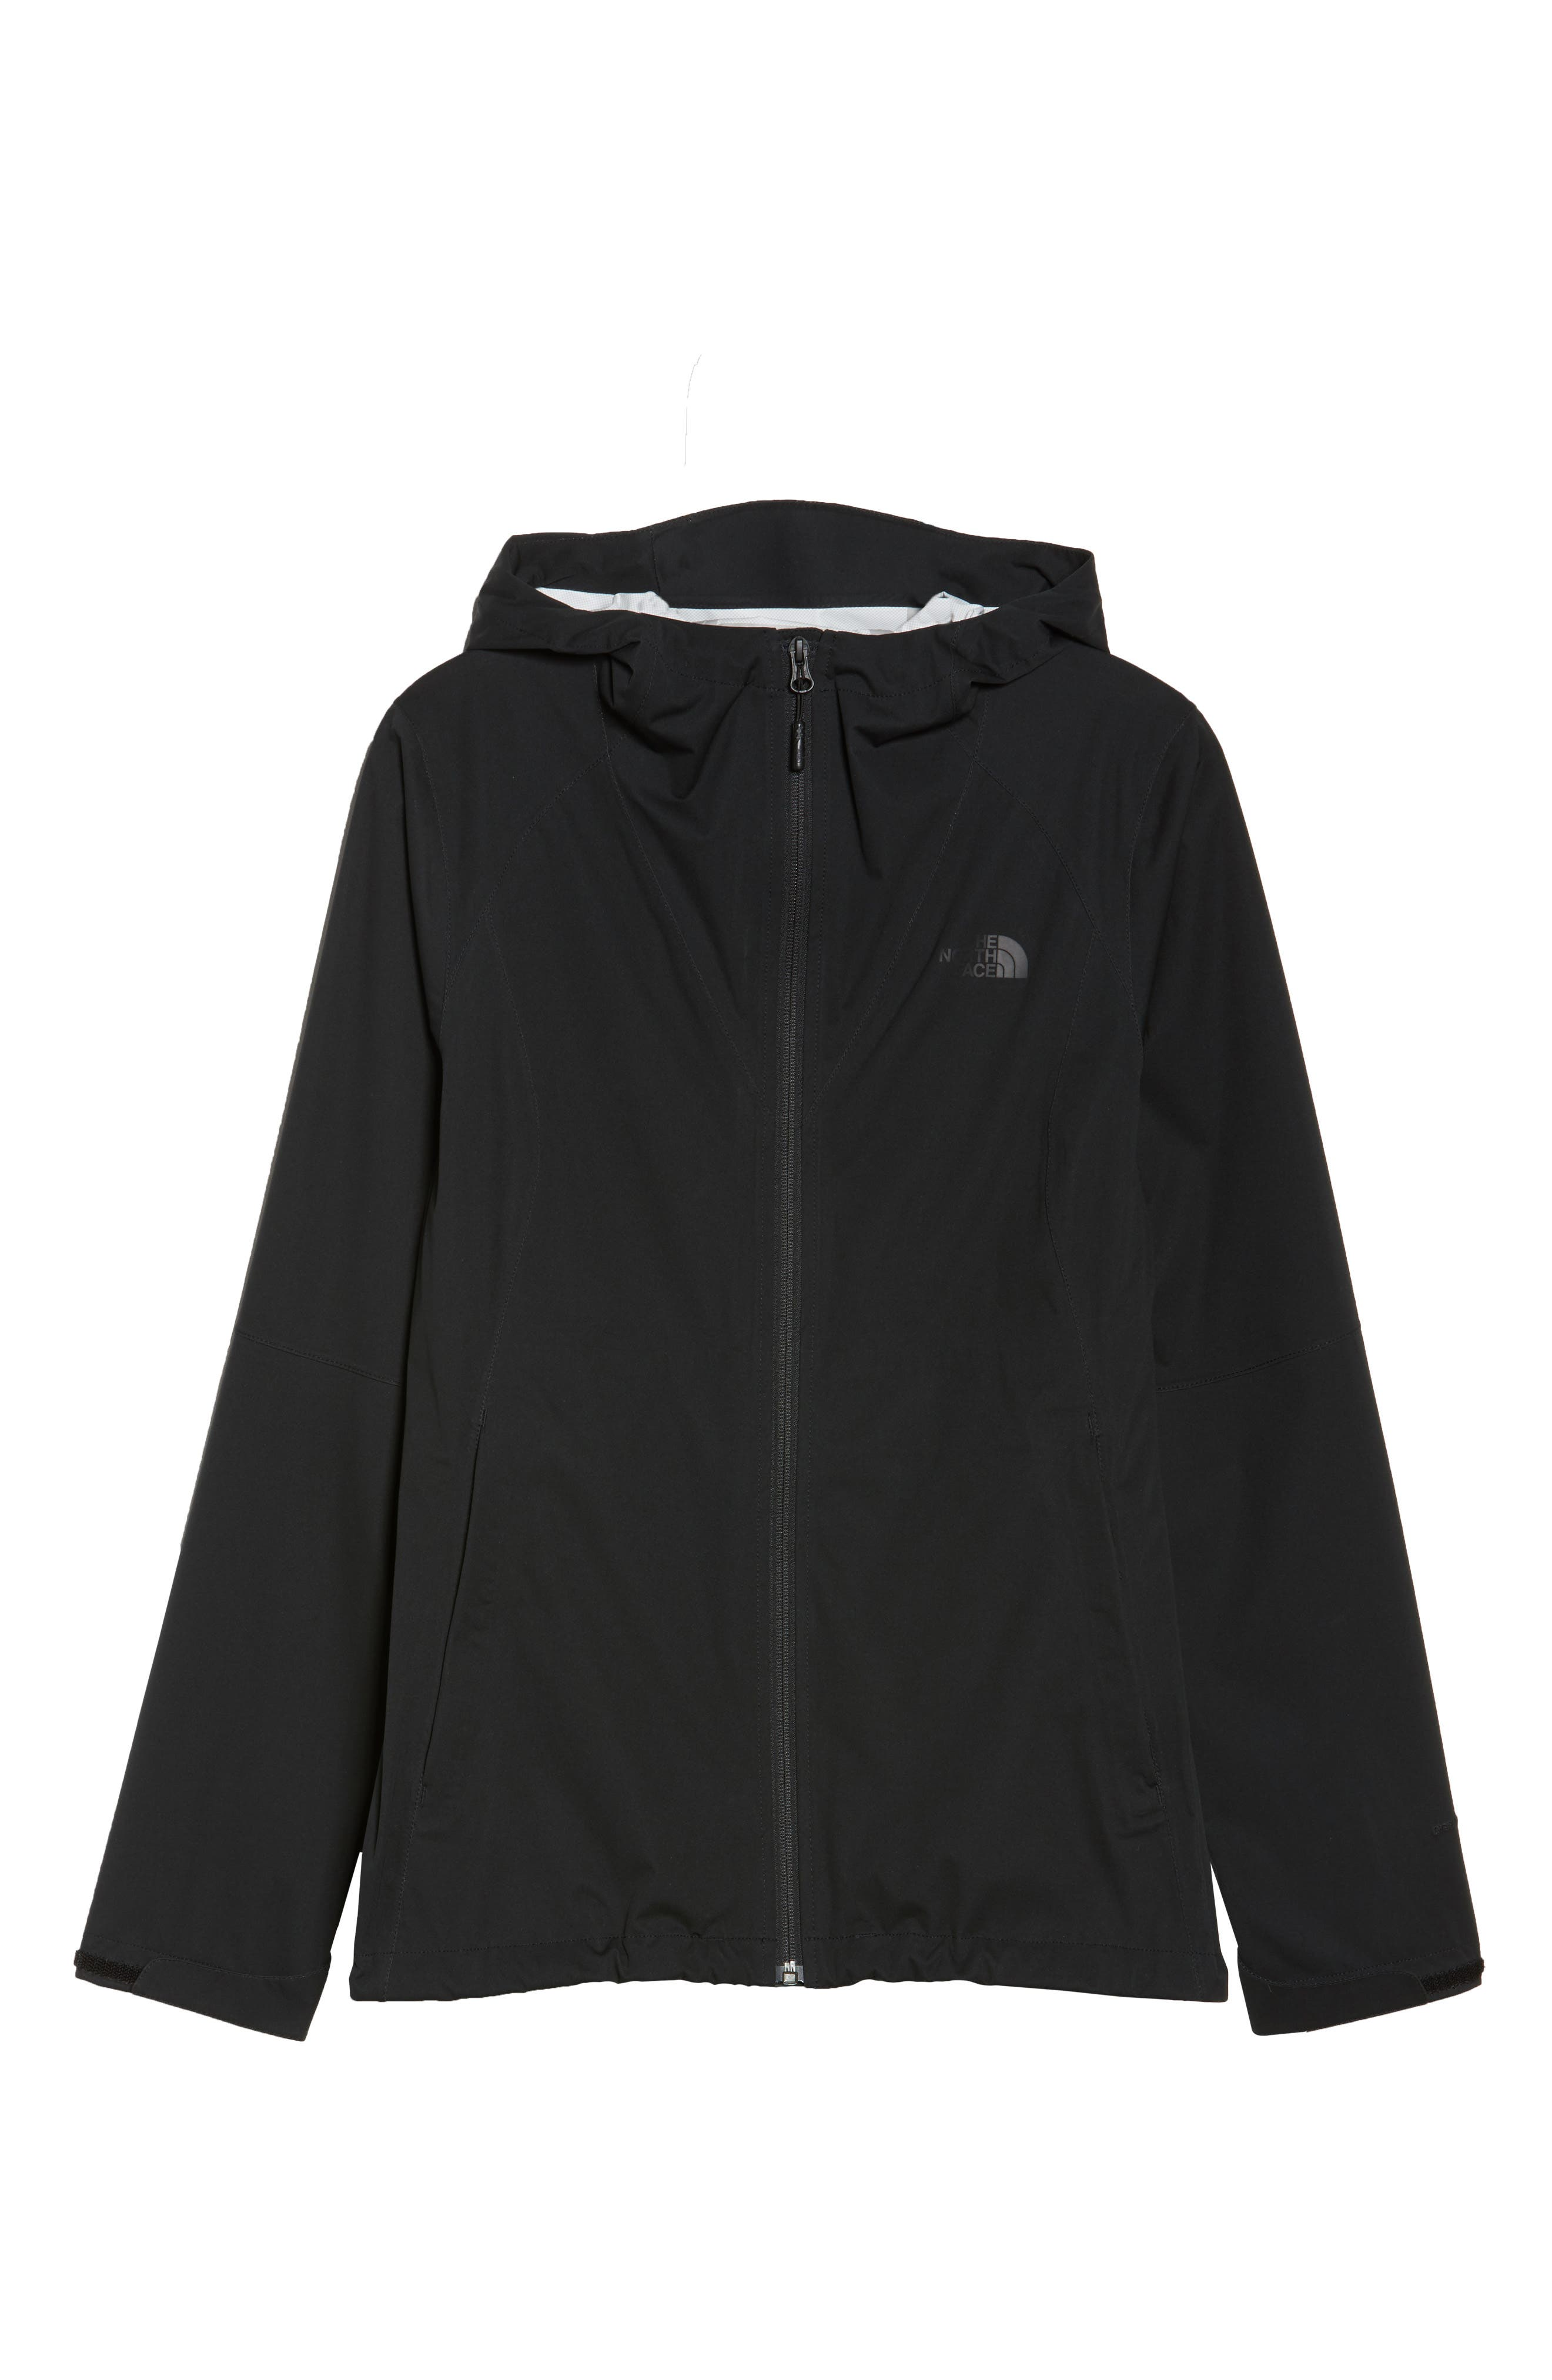 THE NORTH FACE, Allproof Stretch Jacket, Alternate thumbnail 6, color, 001